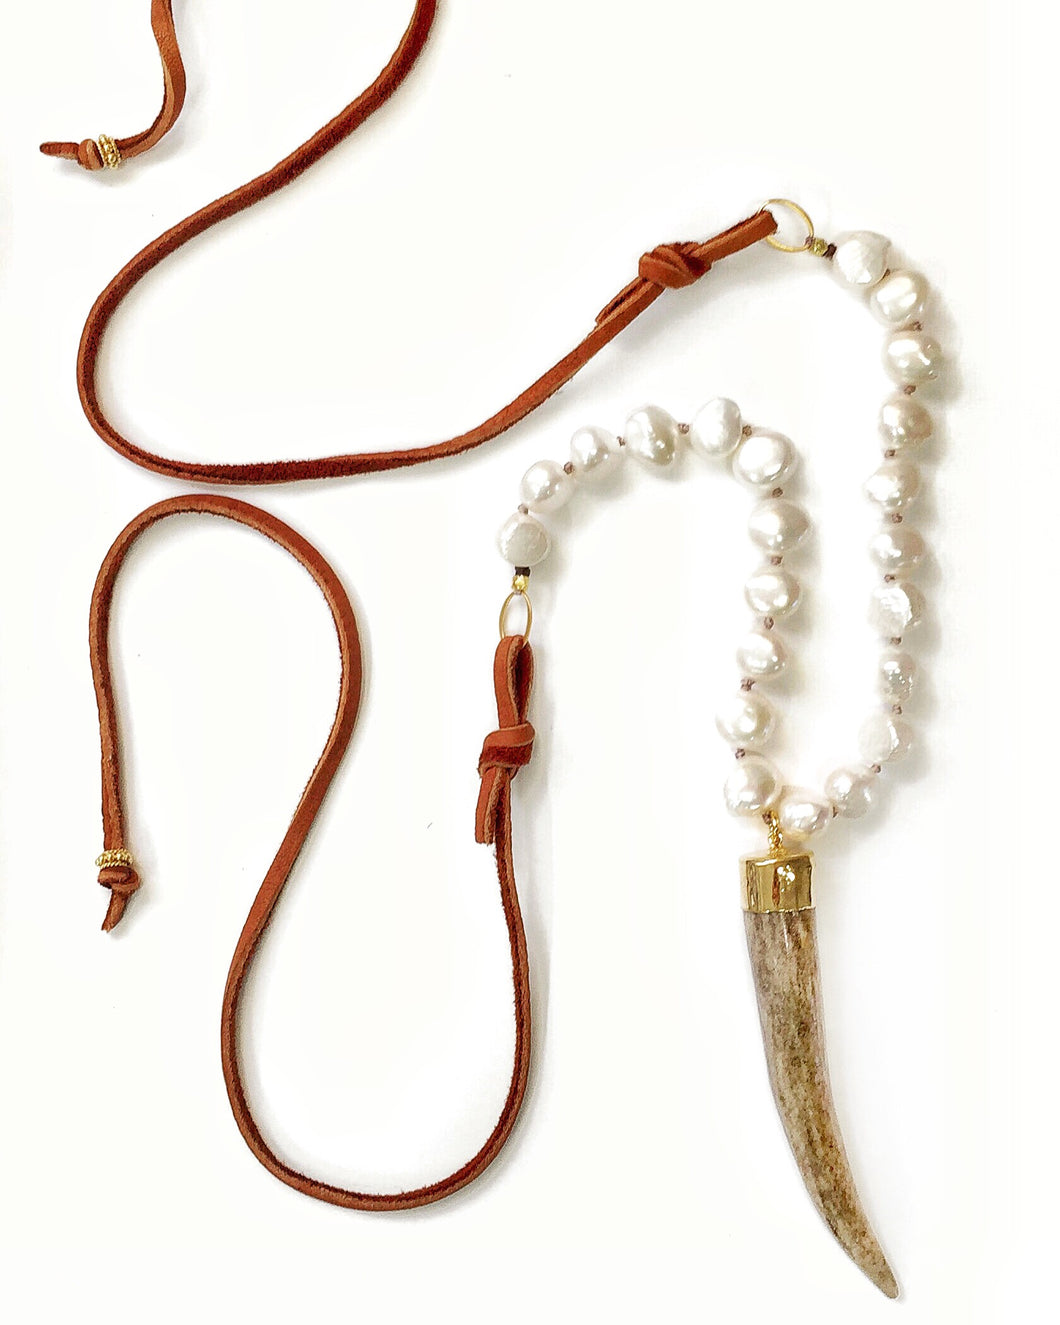 Sea and Stone Jewelry - Gold Tipped Whitetail Deer Antler Pendant with White Cultured Pearls Hand-knotted on Silk Thread with Vermeil Components and Finished in Ultra Soft Deerskin Suede